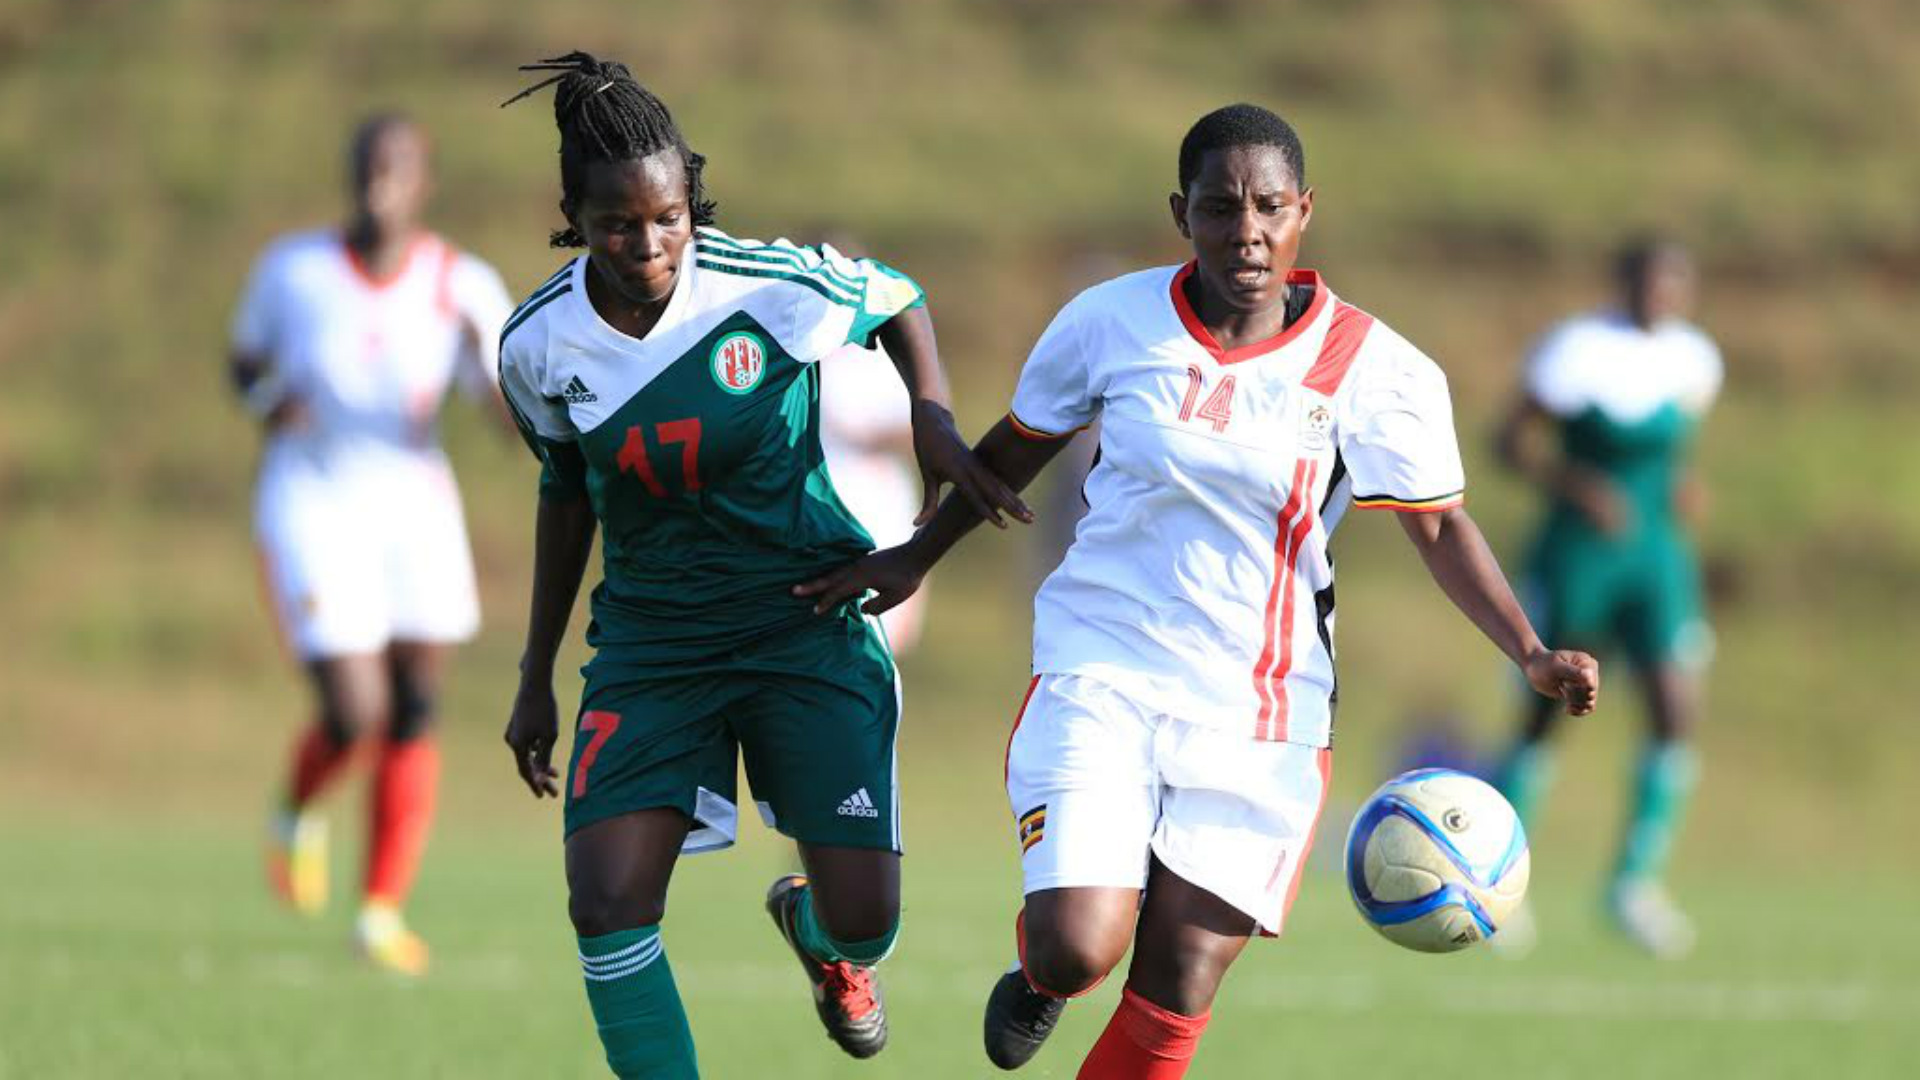 Hosts Uganda also joined Kenya in the semis after edging out Burundi by a solitary goal